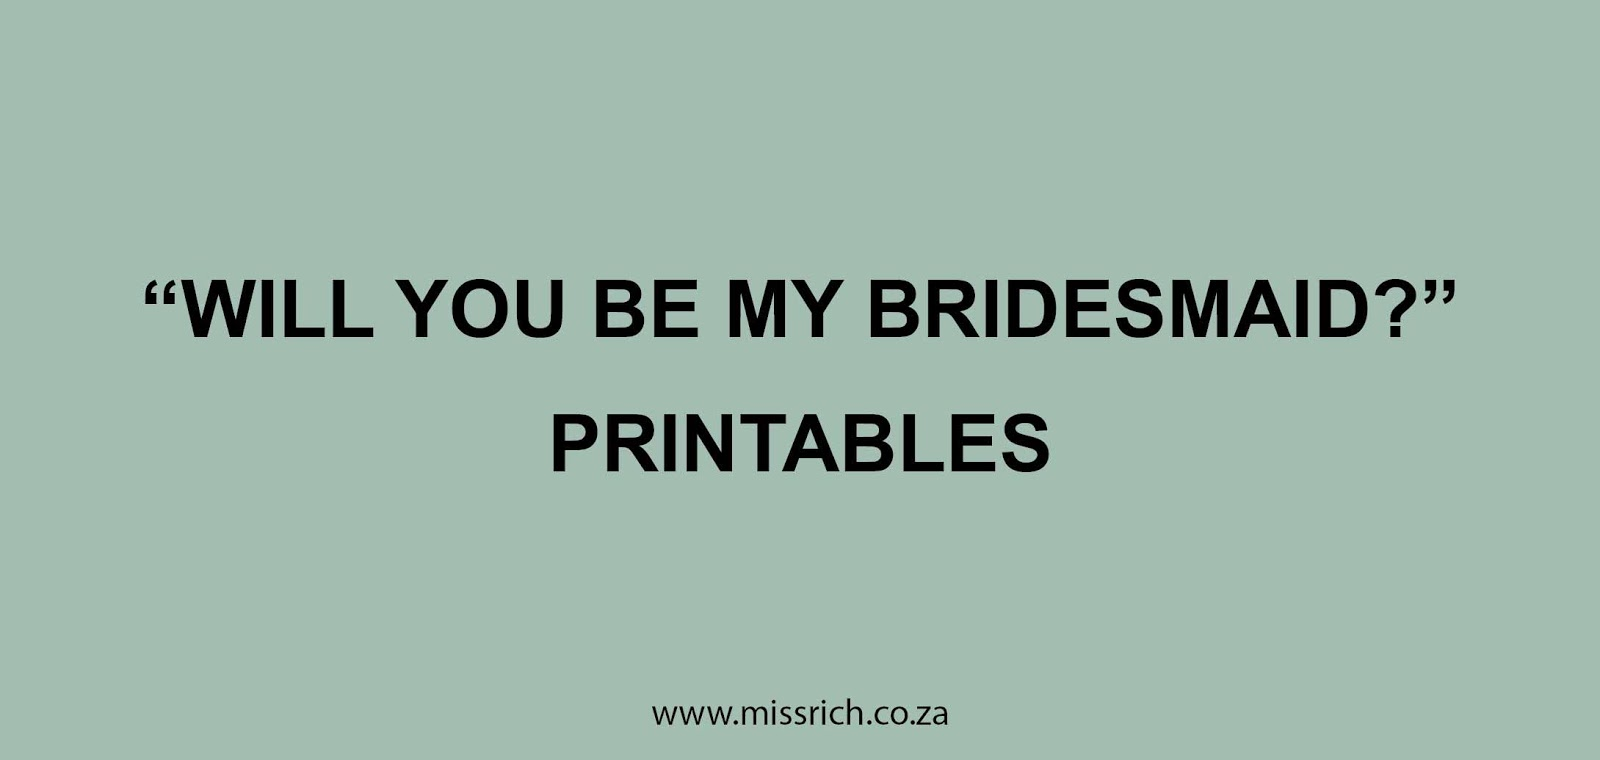 photo relating to Will You Be My Bridesmaid Printable identified as WILL On your own BE MY BRIDESMAID?\u201d PRINTABLES - Overlook Prosperous